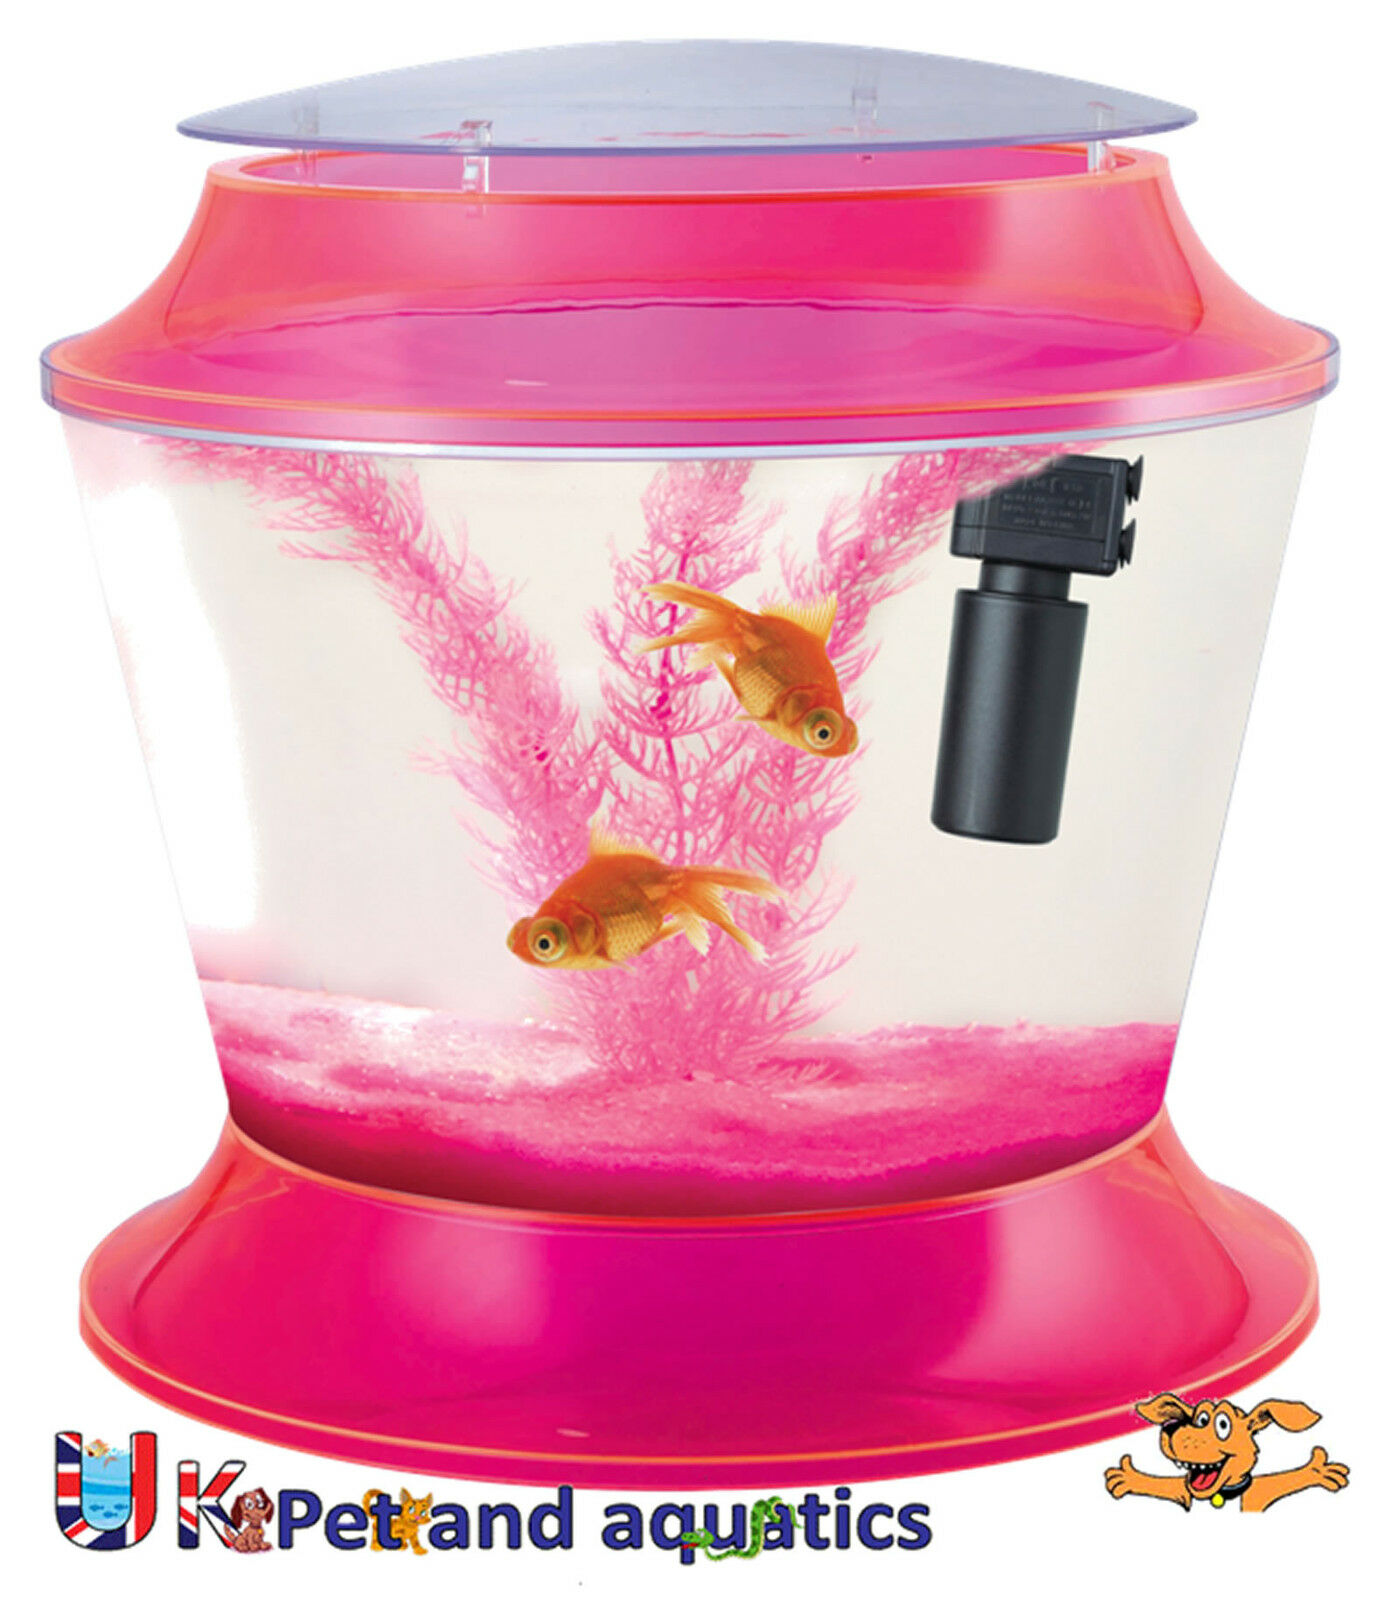 Fish R Fun, Kids Plastic Fish Bowl Pink, With Filter, Gravel & Plant, 17L